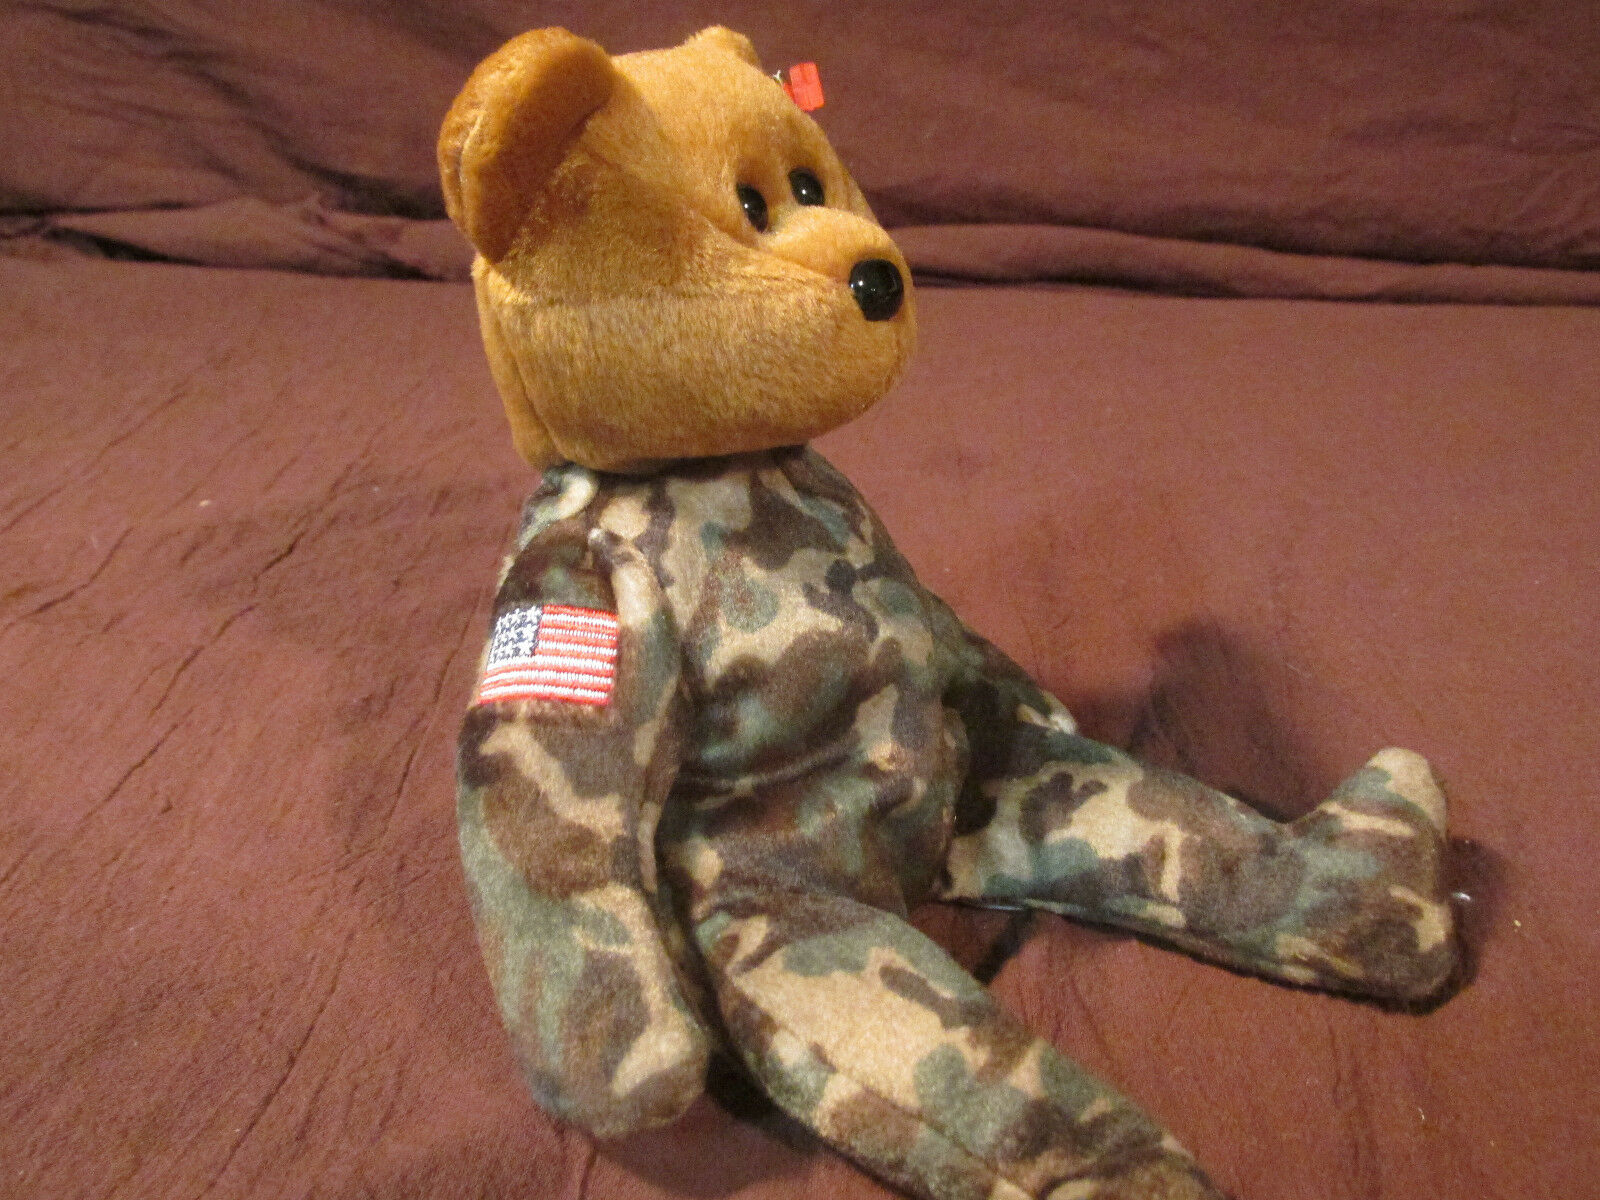 TY Beanie Baby Baby Baby Bear HERO set 2003 USO  USA Great Britain Camouflage Army Marine a4d791